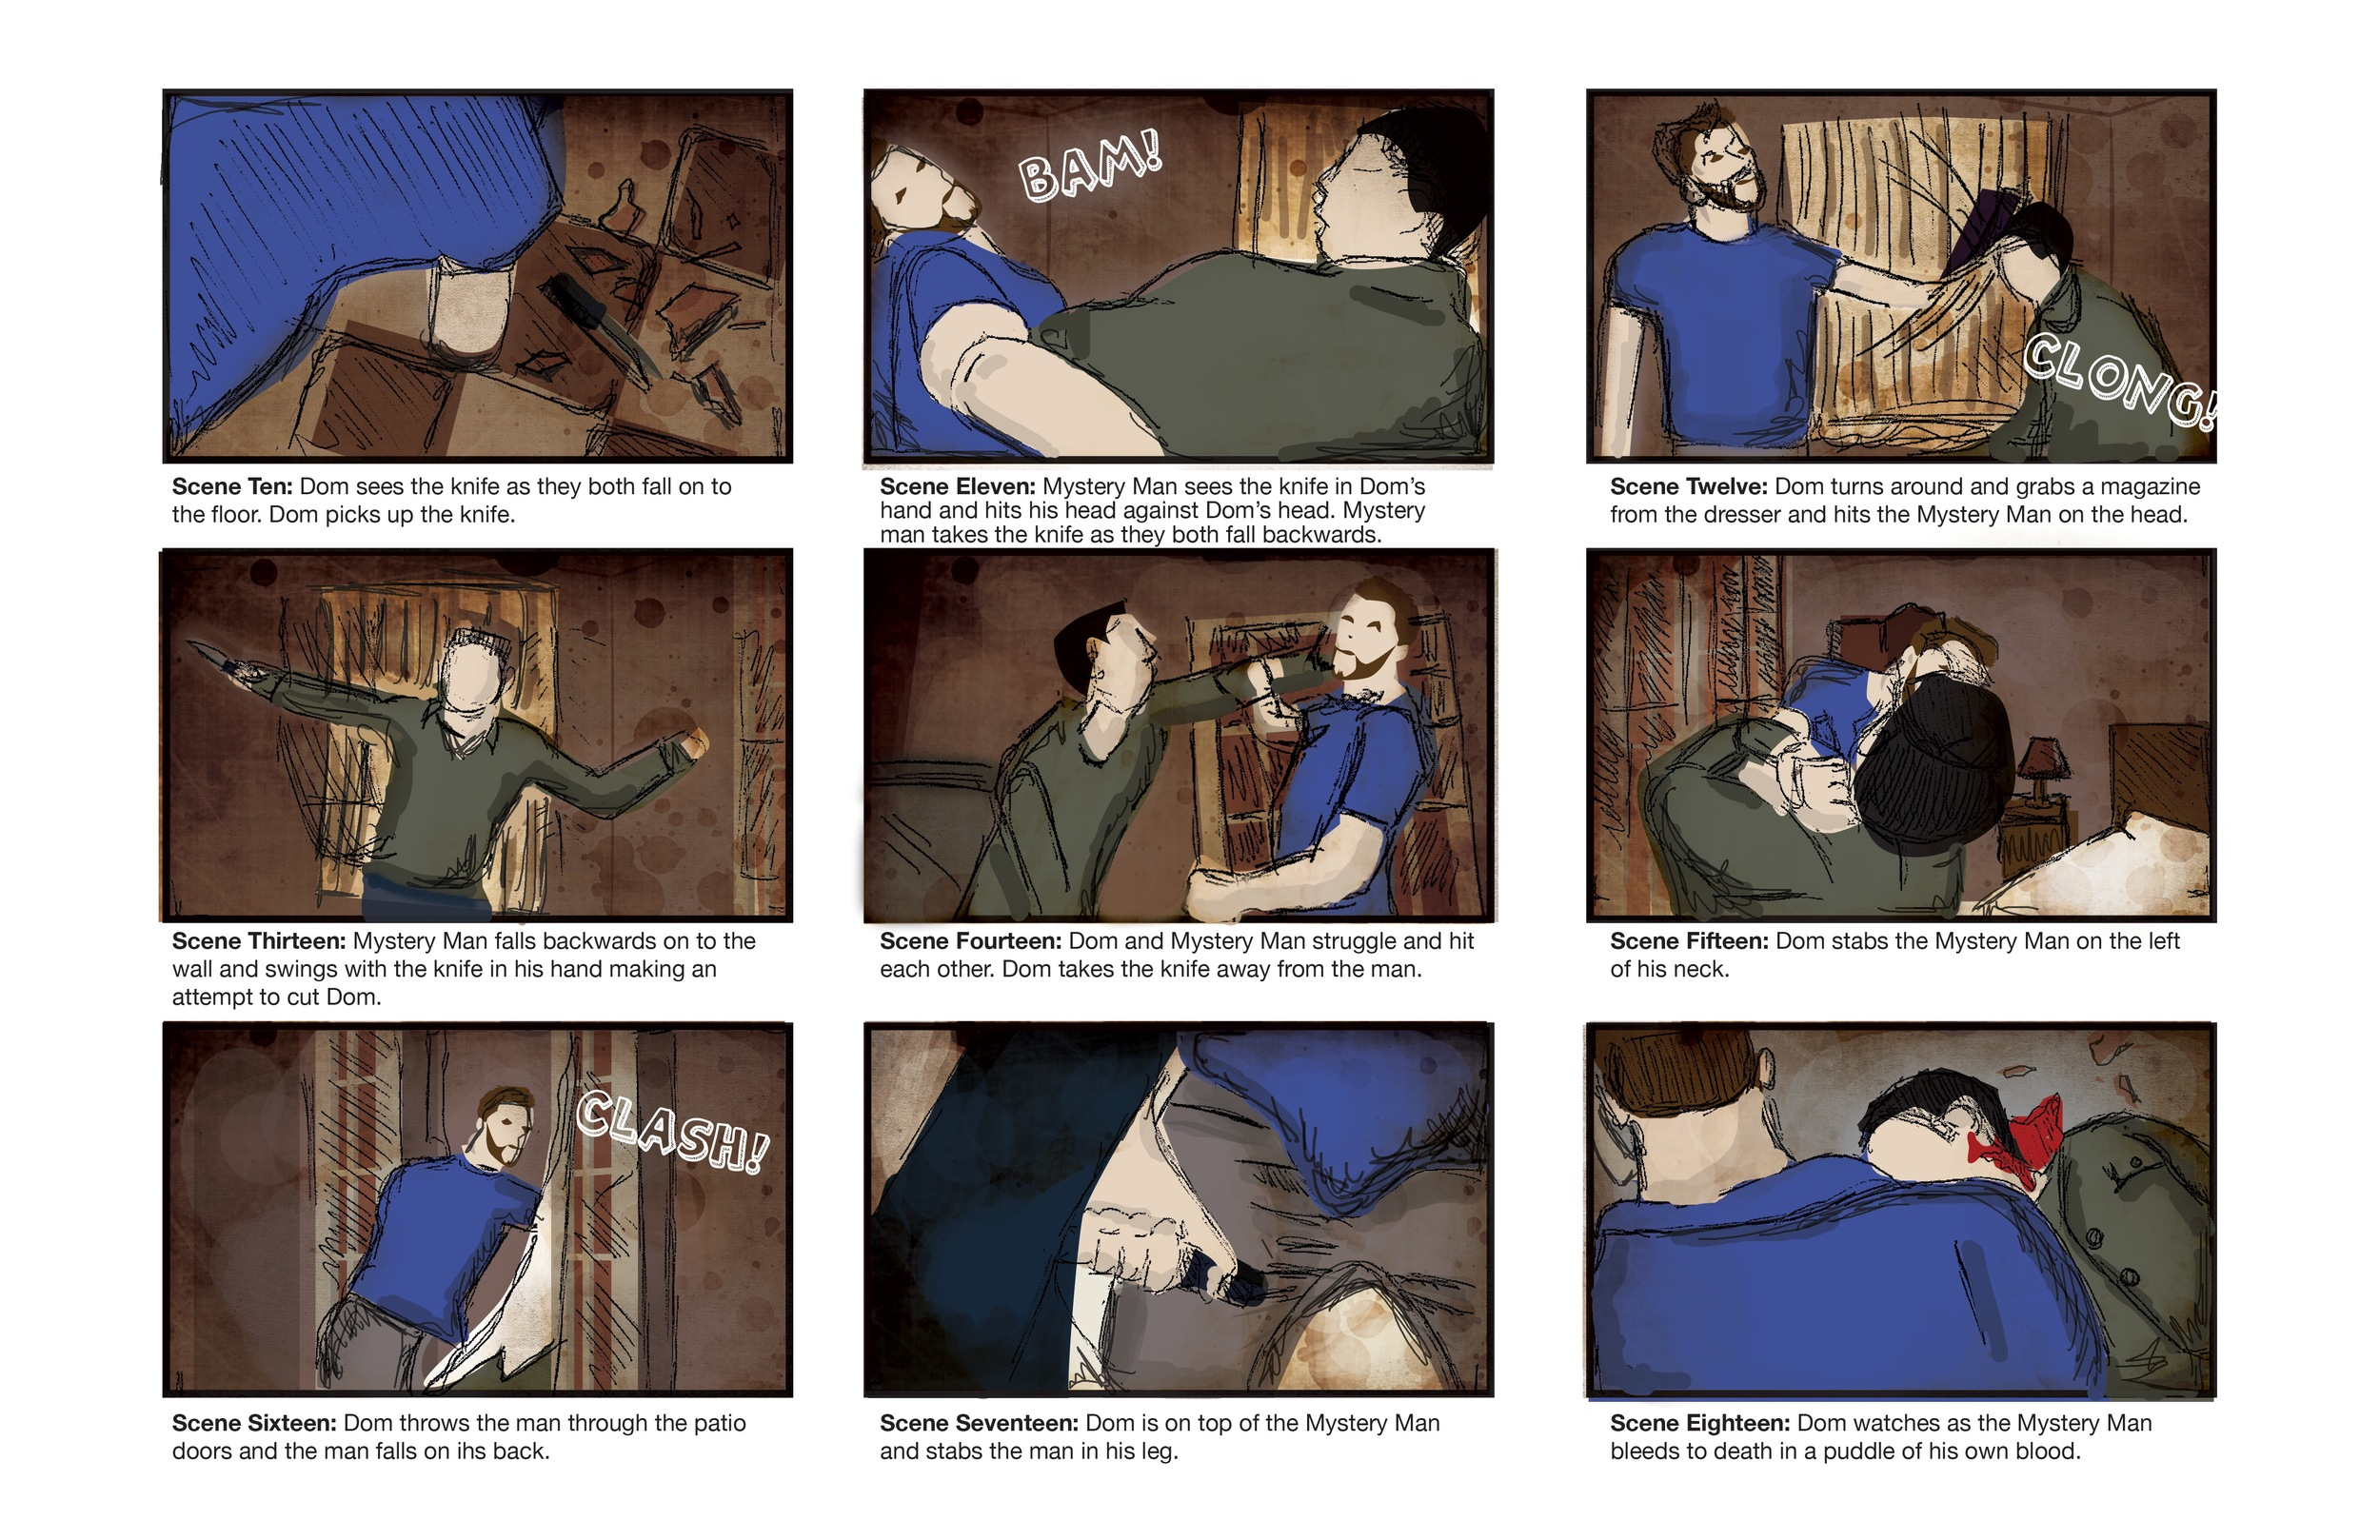 storyboard2_rv2 copy.jpg